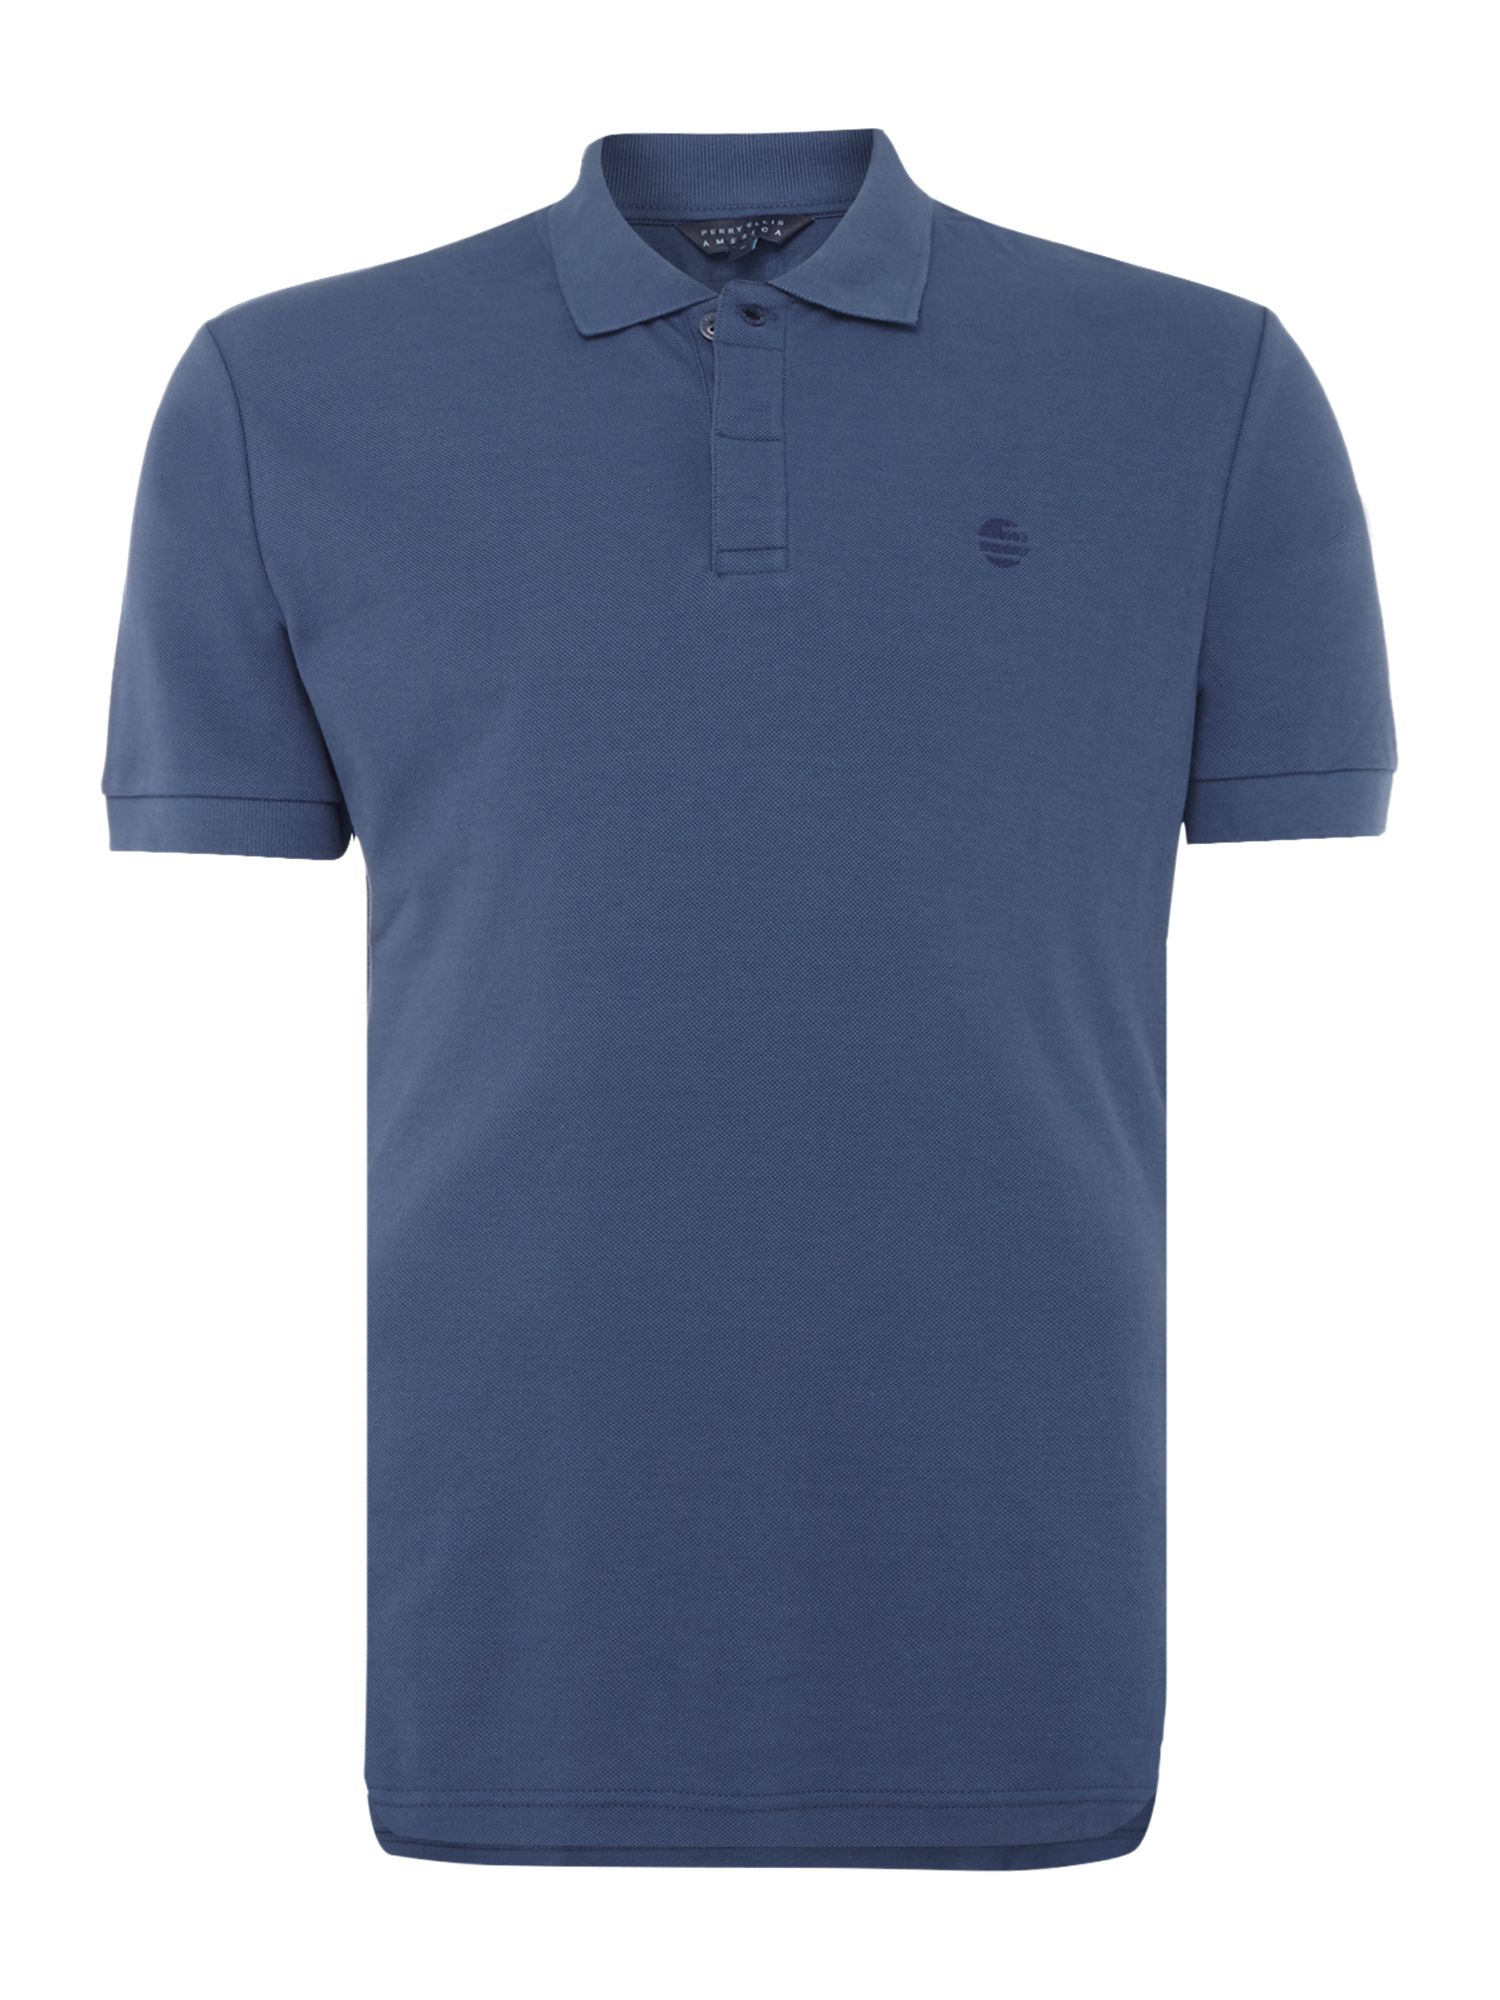 Men's Perry Ellis America Archive Fit Short-Sleeve Polo-Shirt, Indigo